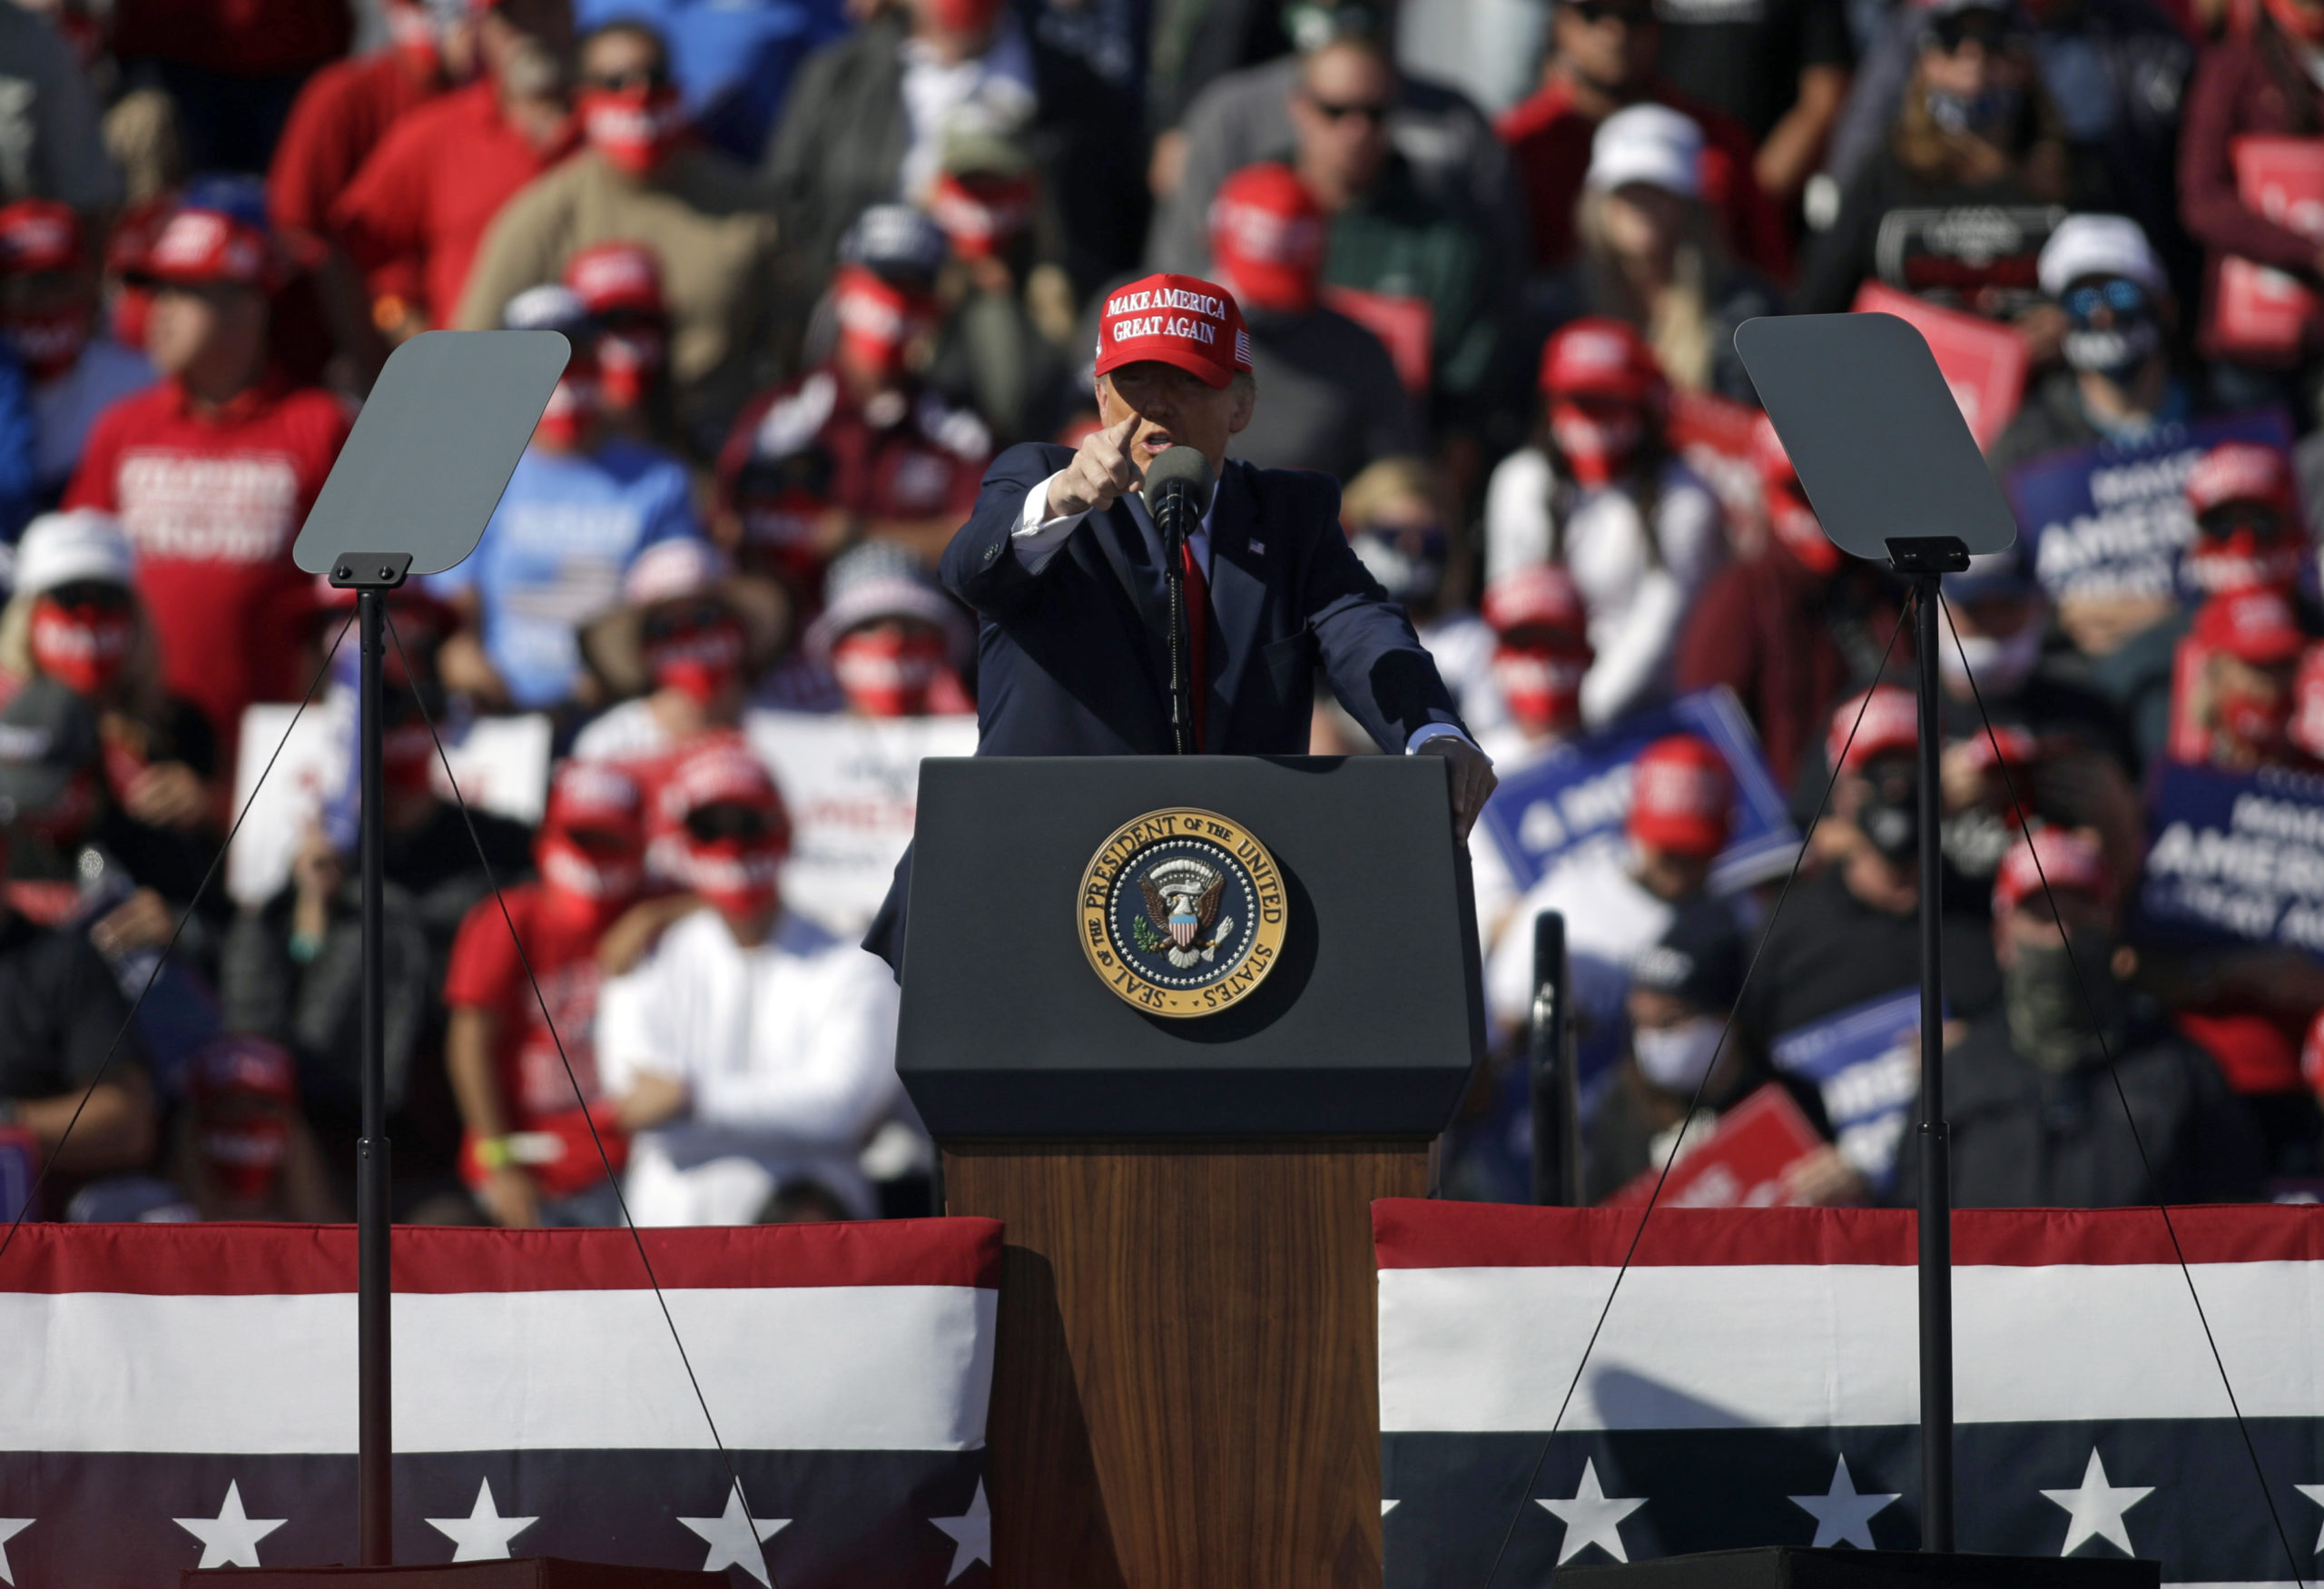 President Donald Trump speaks during a campaign rally on Wednesday in Bullhead City, Arizona. (Isaac Brekken/Getty Images)